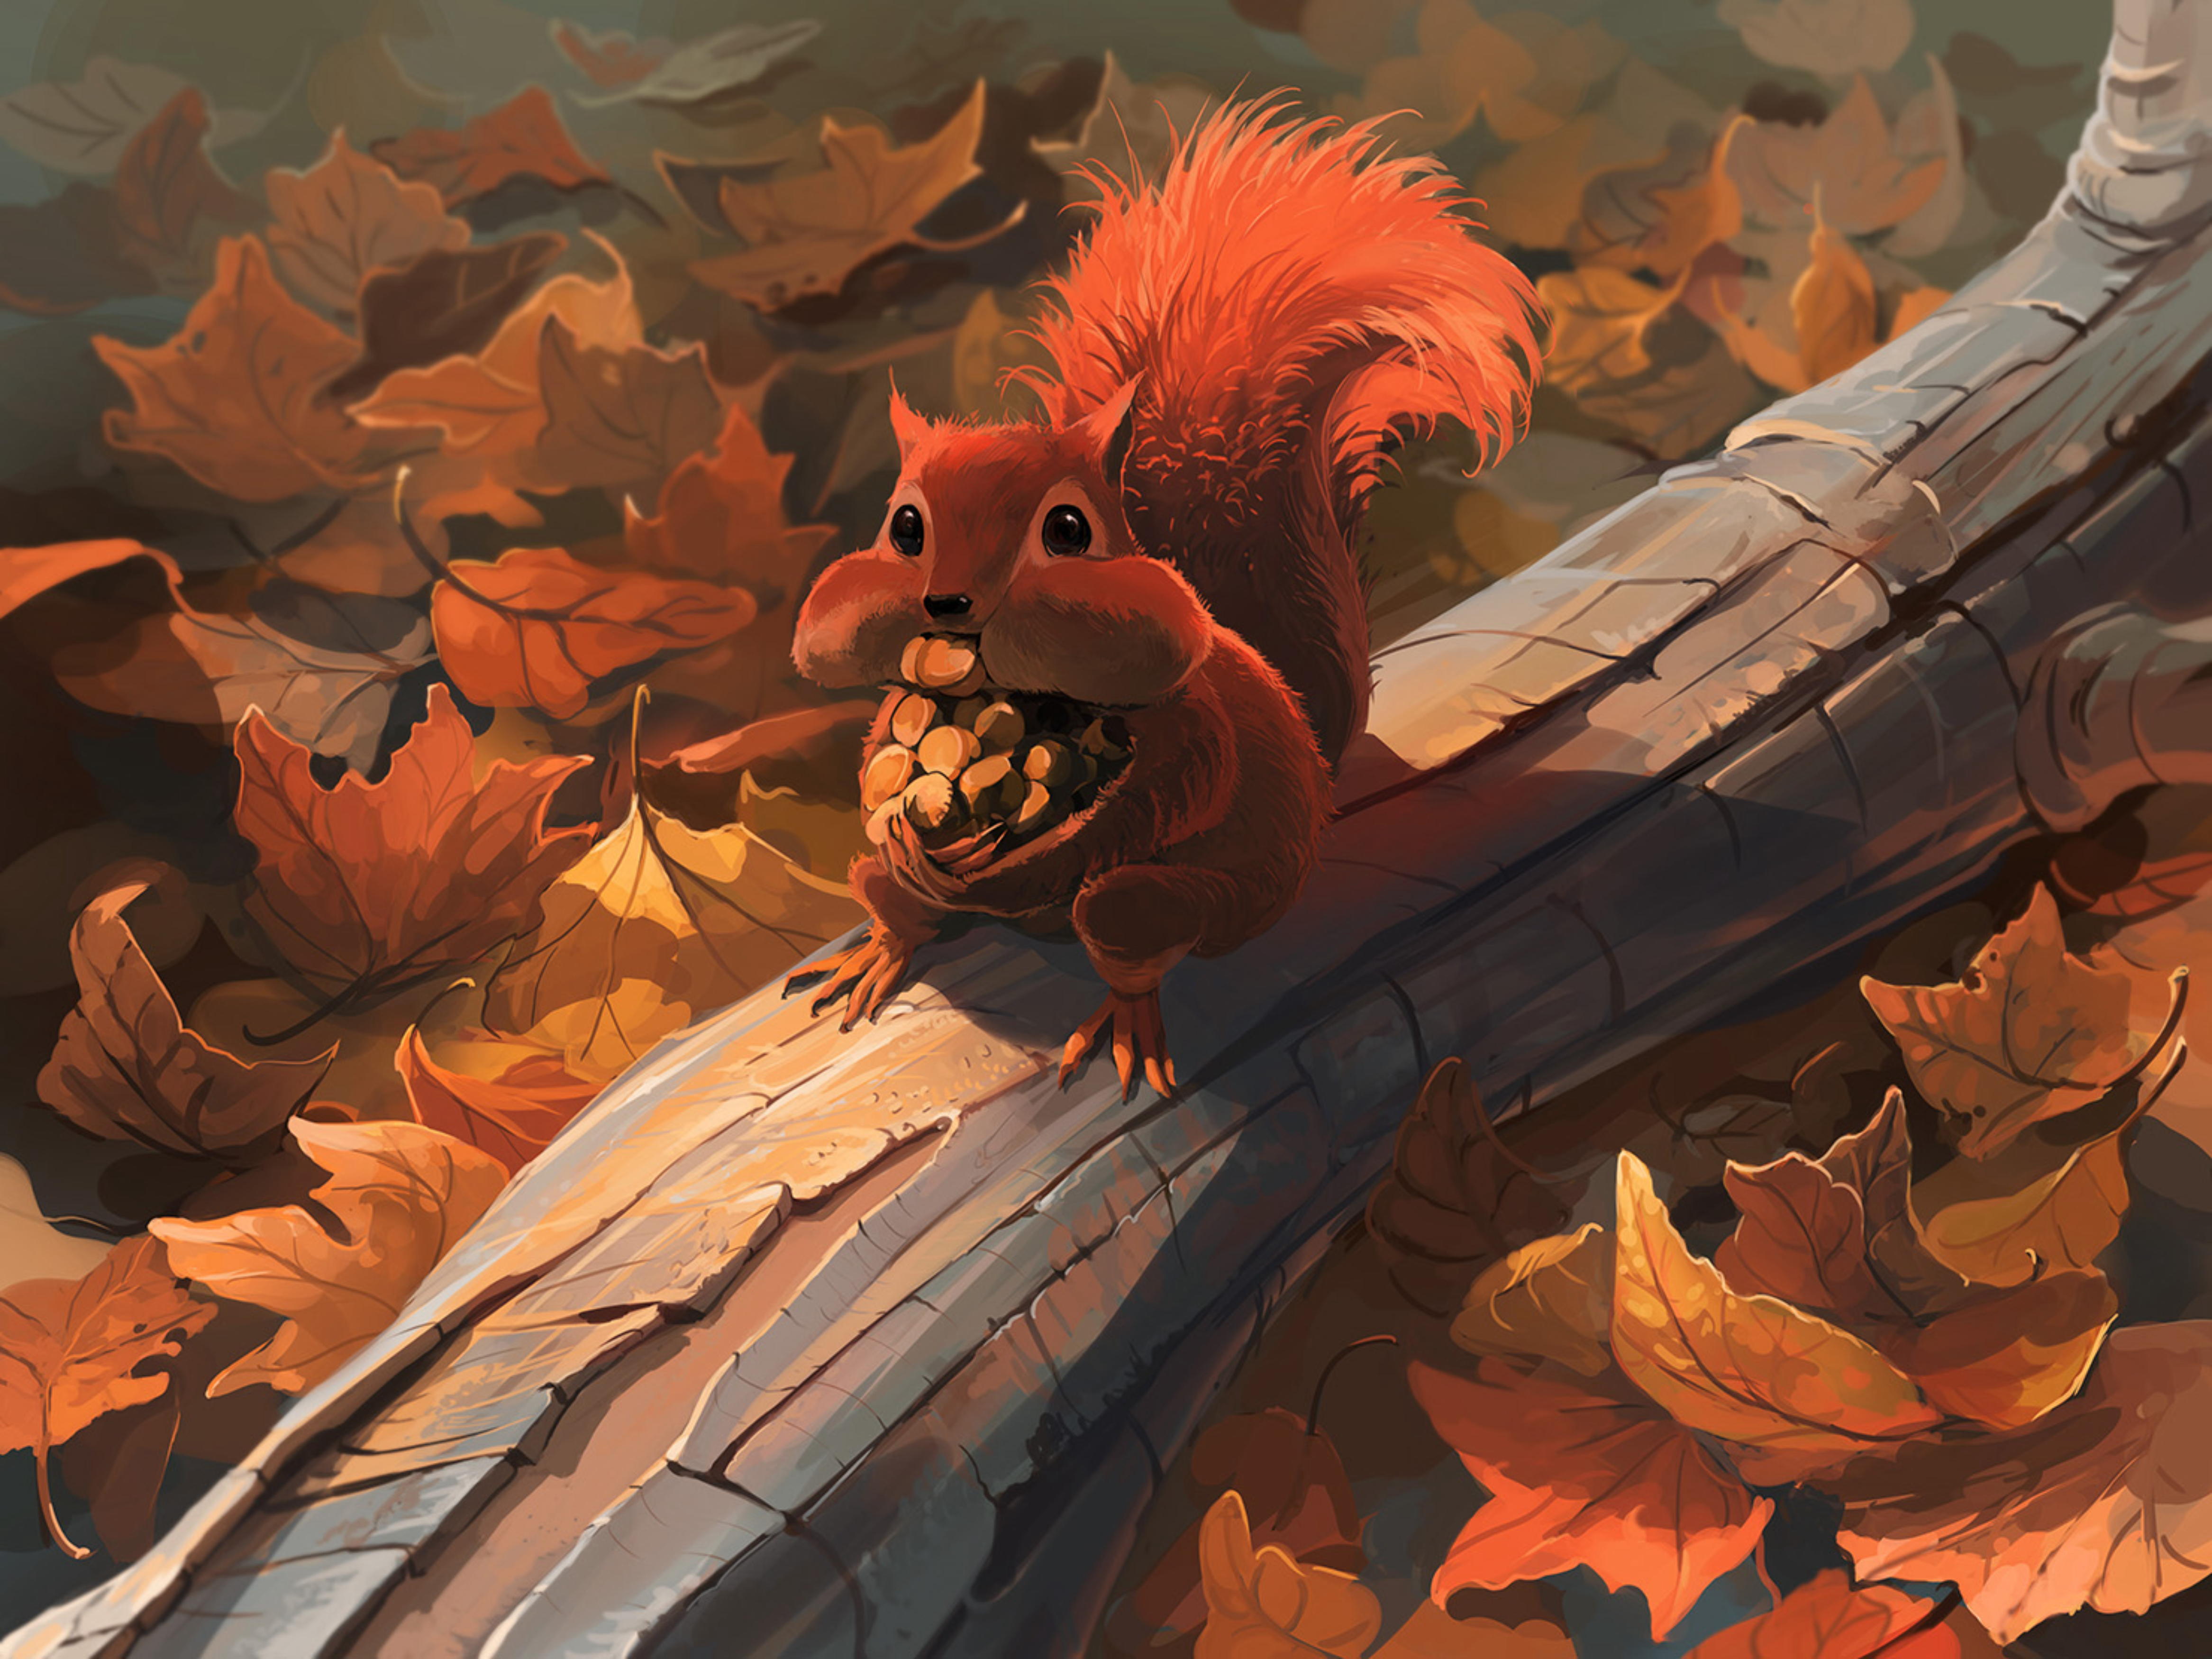 89635 download wallpaper Squirrel, Food, Art, Autumn, Nuts, Foliage screensavers and pictures for free